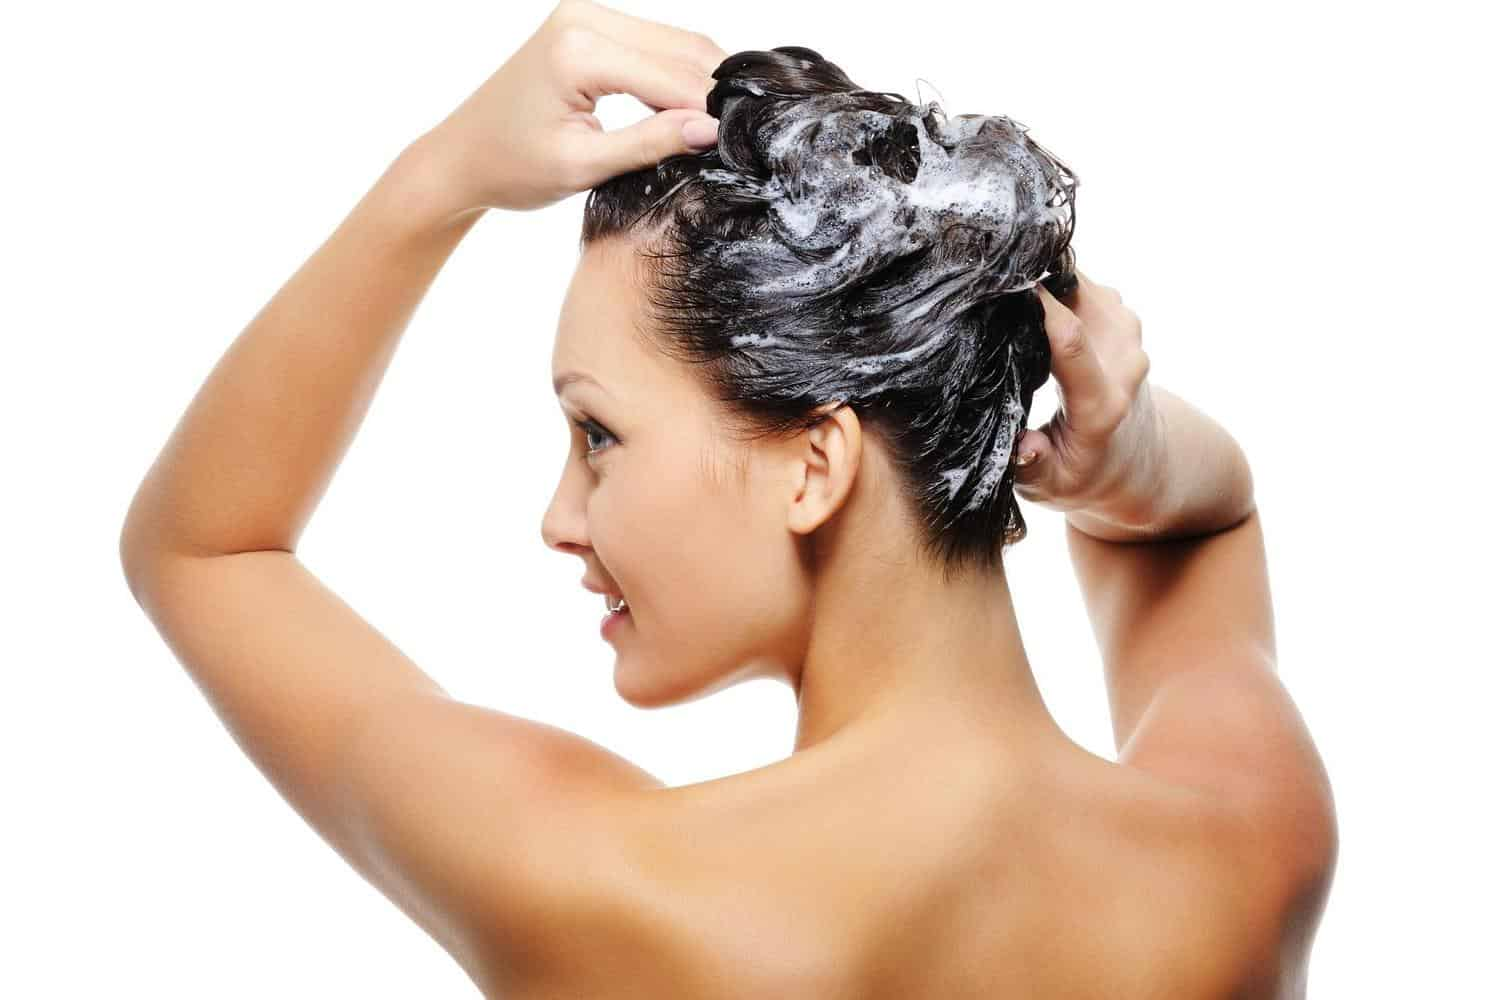 A woman applying shampoo to her hair.